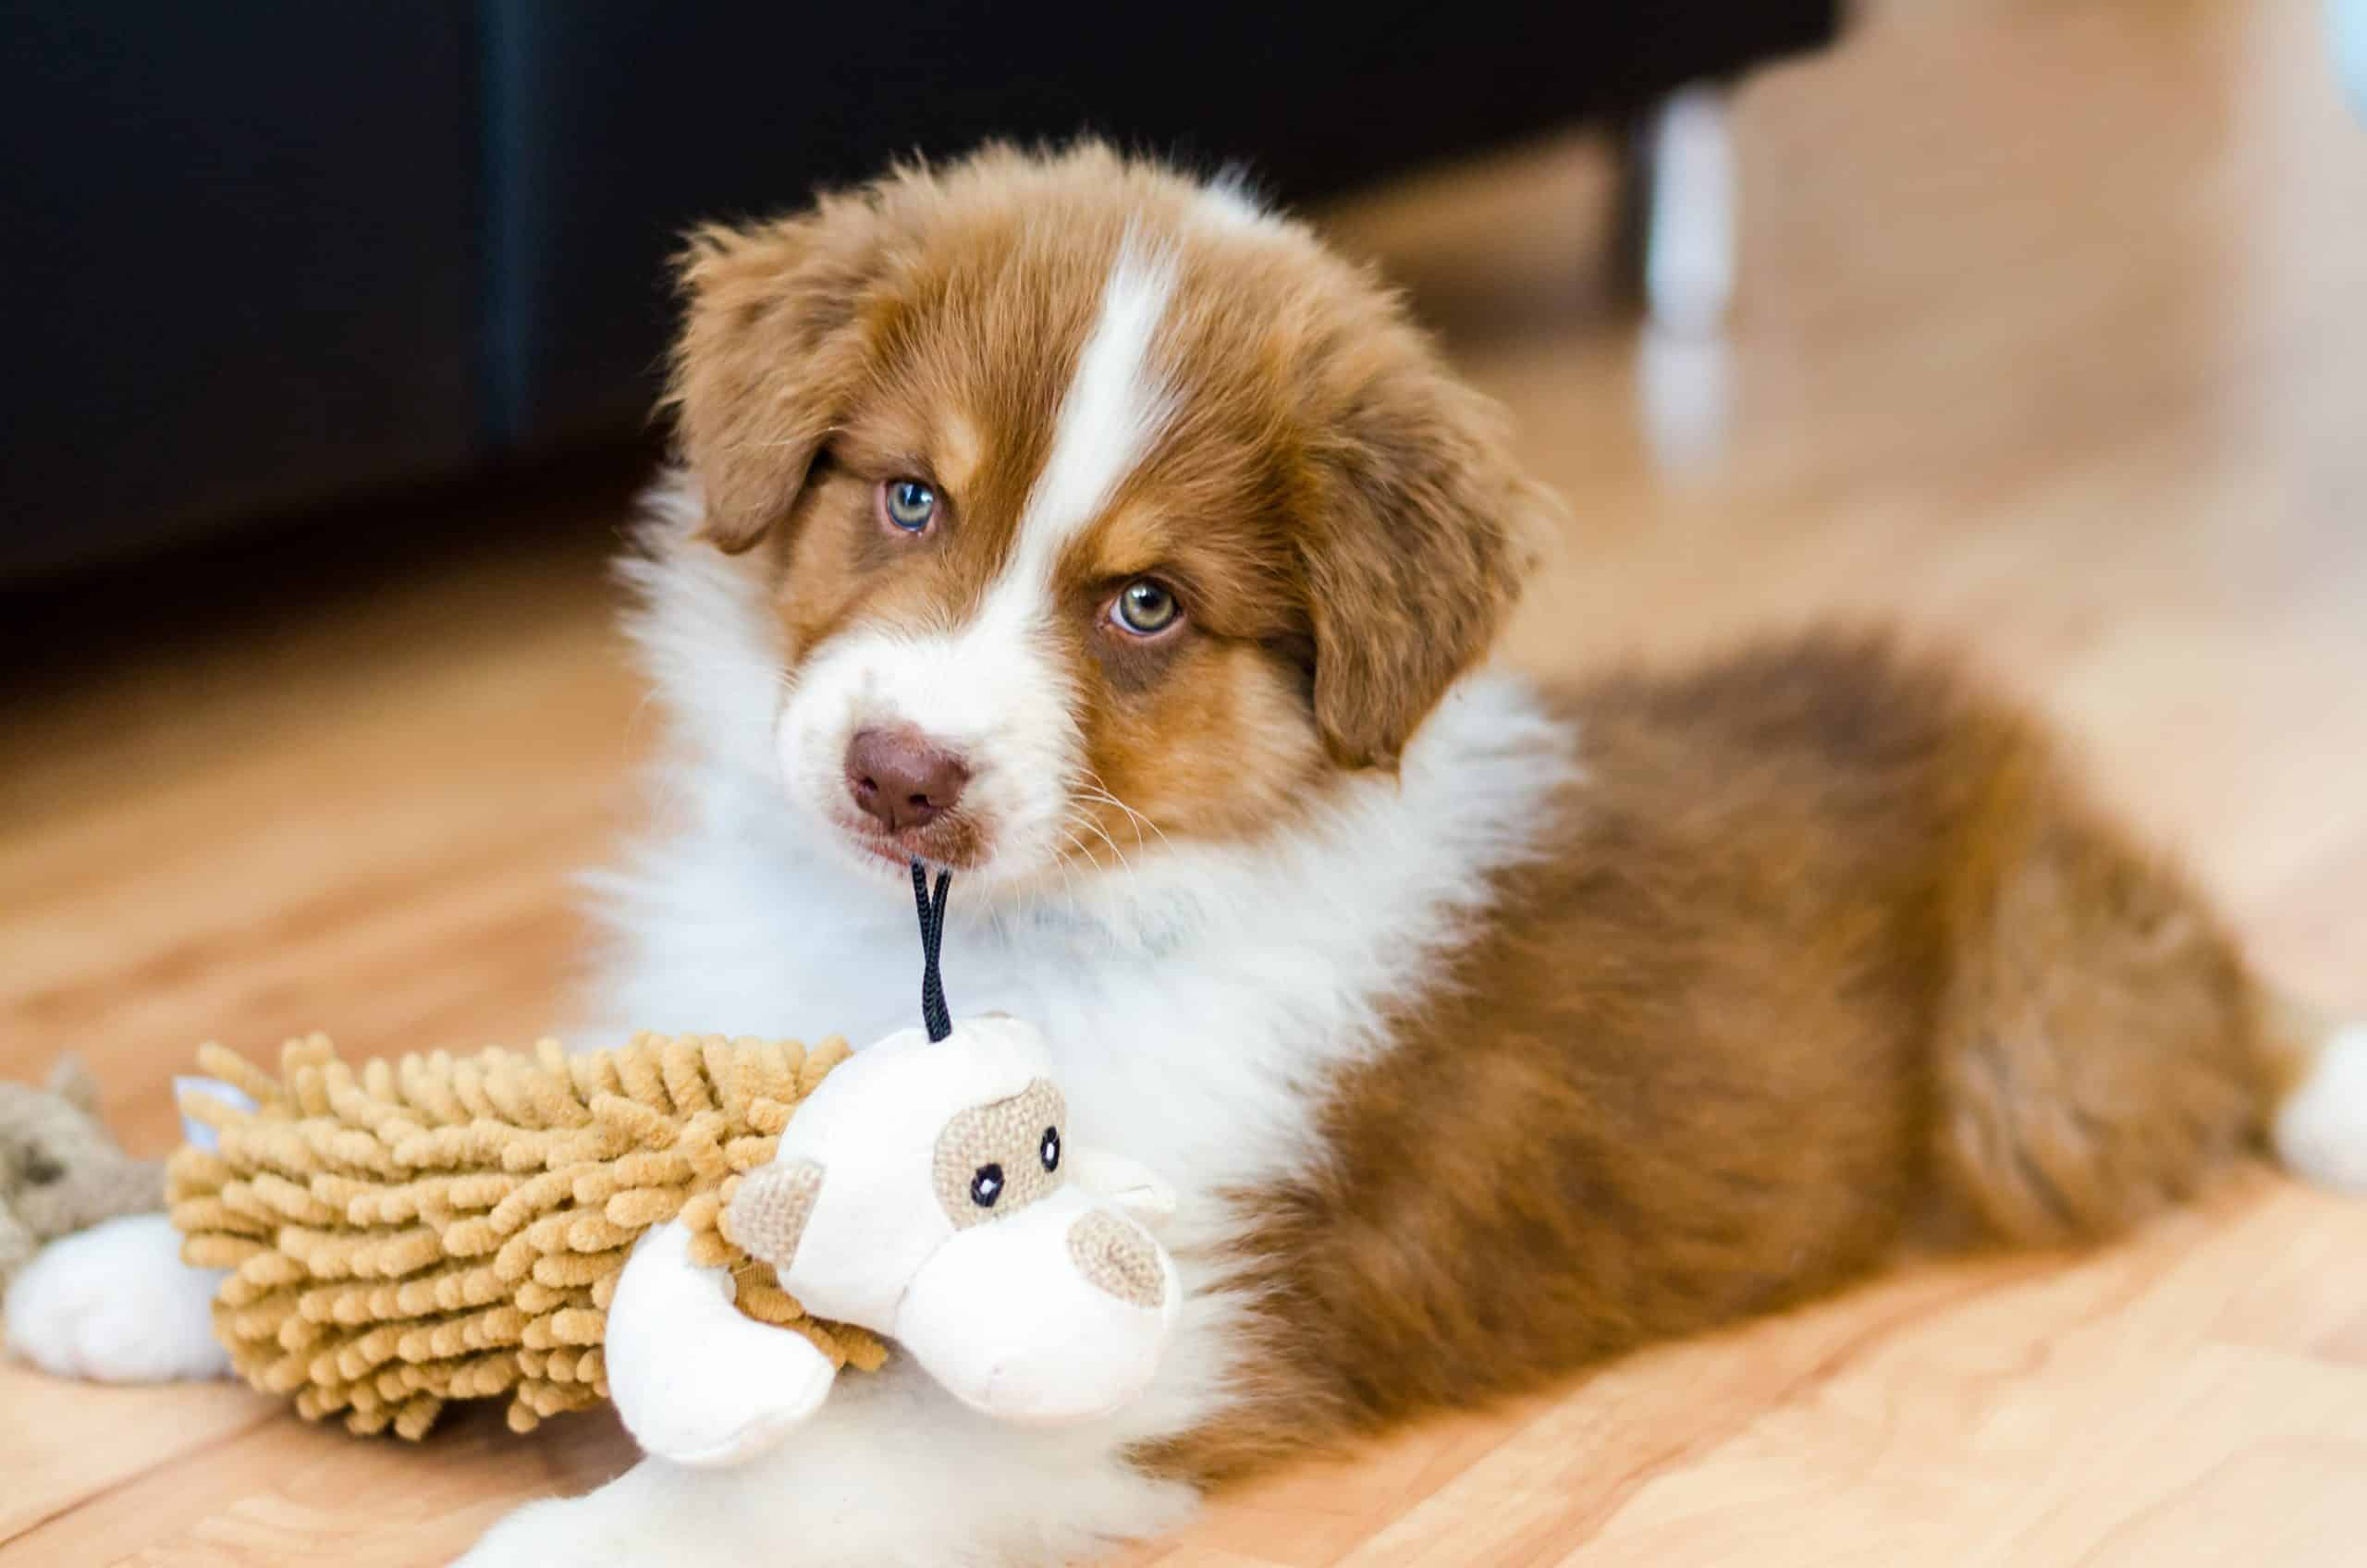 Australian shepherd puppy plays with a chew toy. Start to teach your puppy socialization skills when the puppy is 2-16 weeks.